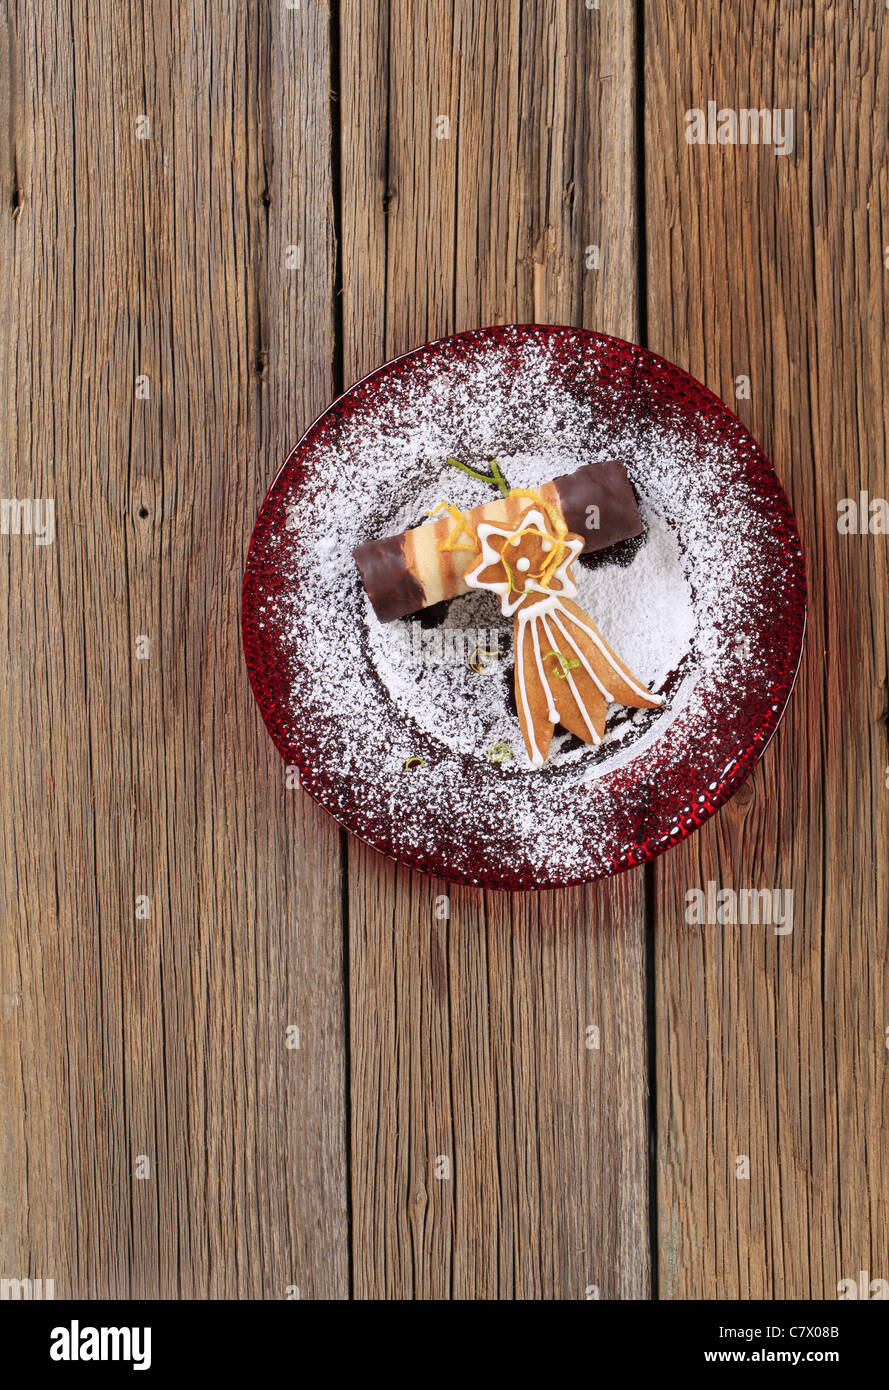 Chocolate dipped wafer cookie and gingerbread comet - Stock Image